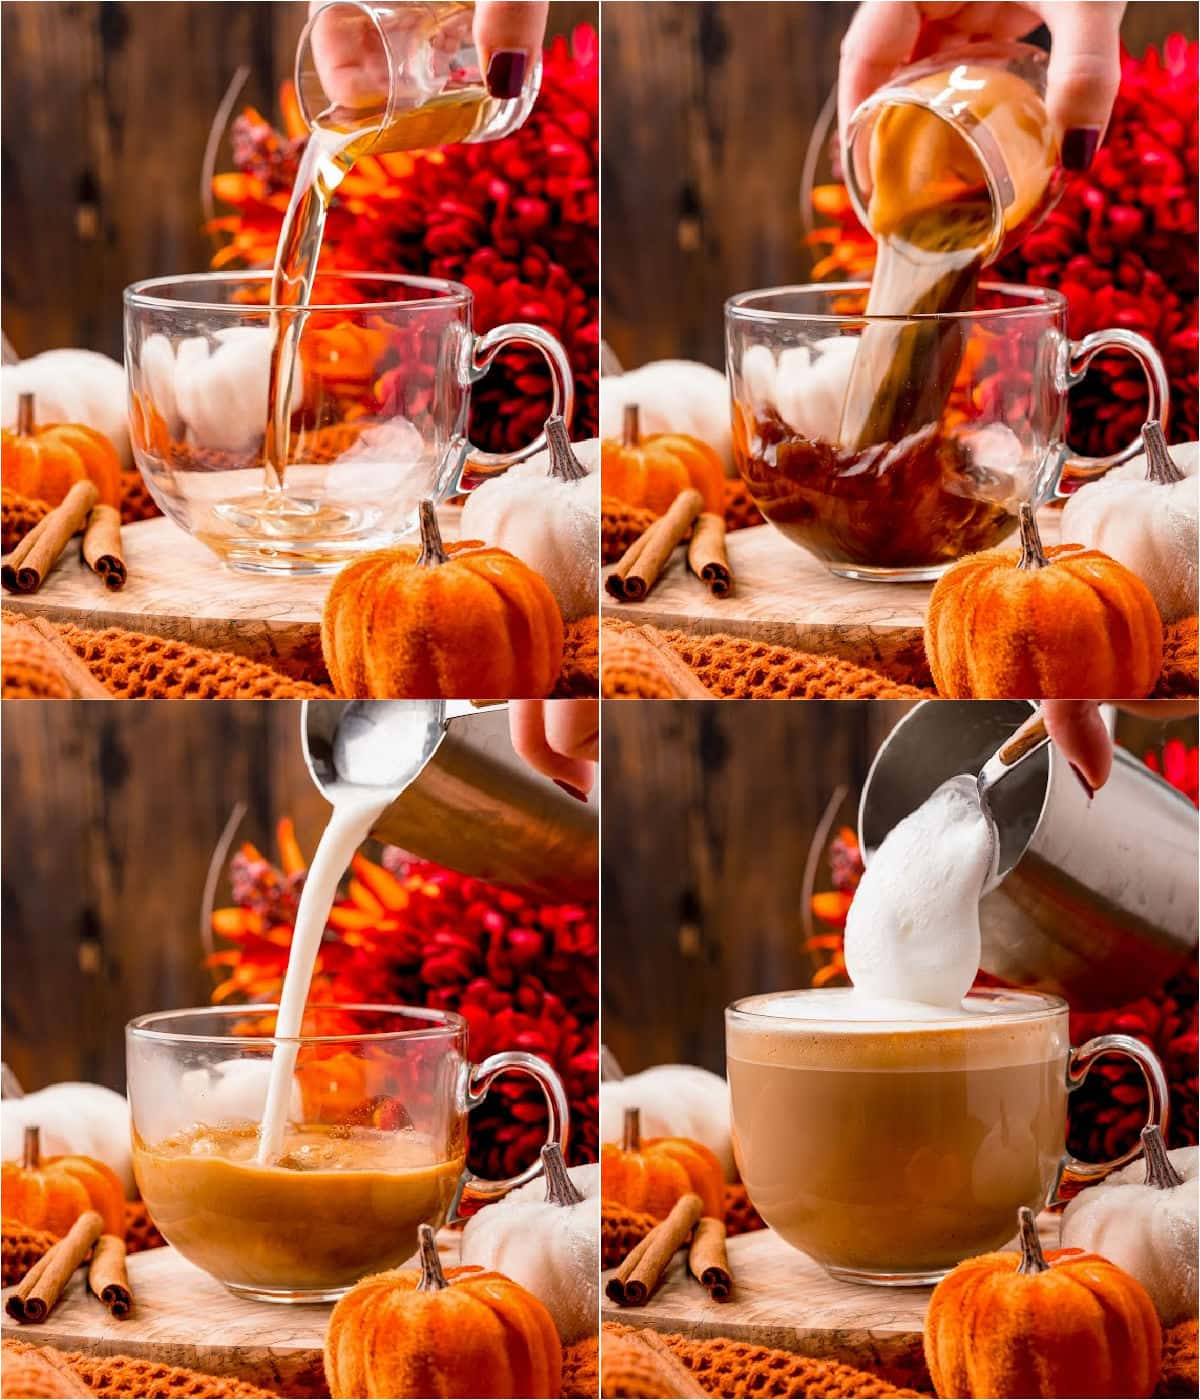 four image collage showing how to make pumpkin spice latte.